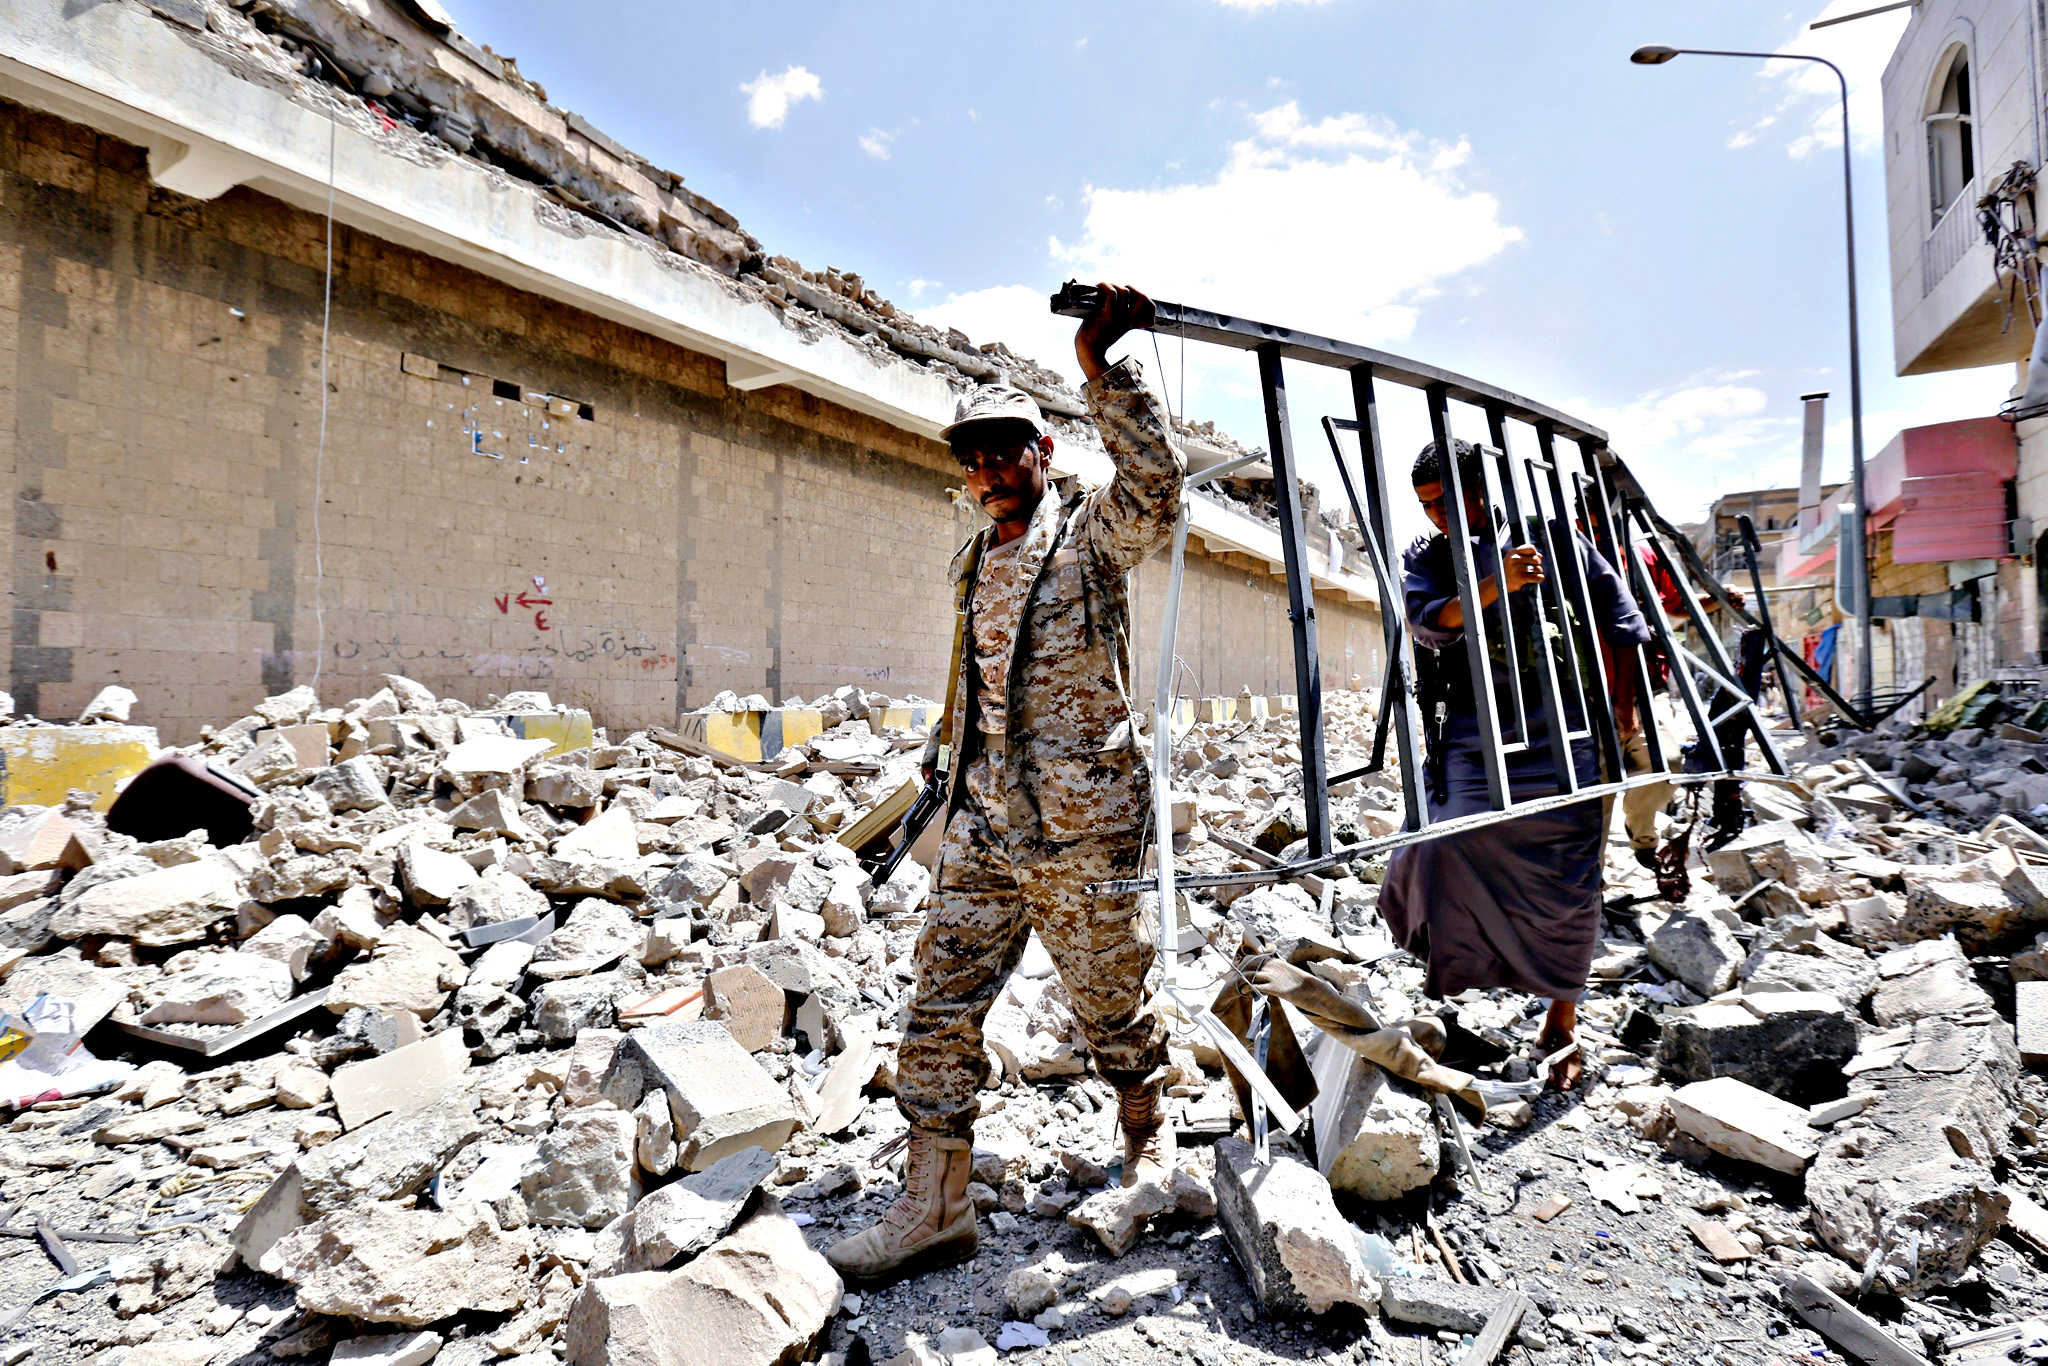 A member of the Yemeni armed forces and a member of the Houthi militia remove debris from amid the rubble of the Houthi-controlled headquarters of Yemen s Defence Ministry, destroyed by airstrikes carried out by the Saudi-led coalition in Sana a, Yemen, 16 September 2015. Yemen has seen six months of intense conflict since the Houthis advanced from Sana'a on the southern city of Aden, forcing Abd Rabu Masour Hadi to flee the country to Saudi and precipitating the ongoing coaltion military operations in the impoverished country. According to reports Hadi has refused to attend a new round of ceasefire negotiations unless the Houthis publicly recognise the legitimacy of the exiled Government and withdraw from Yemen's main cities